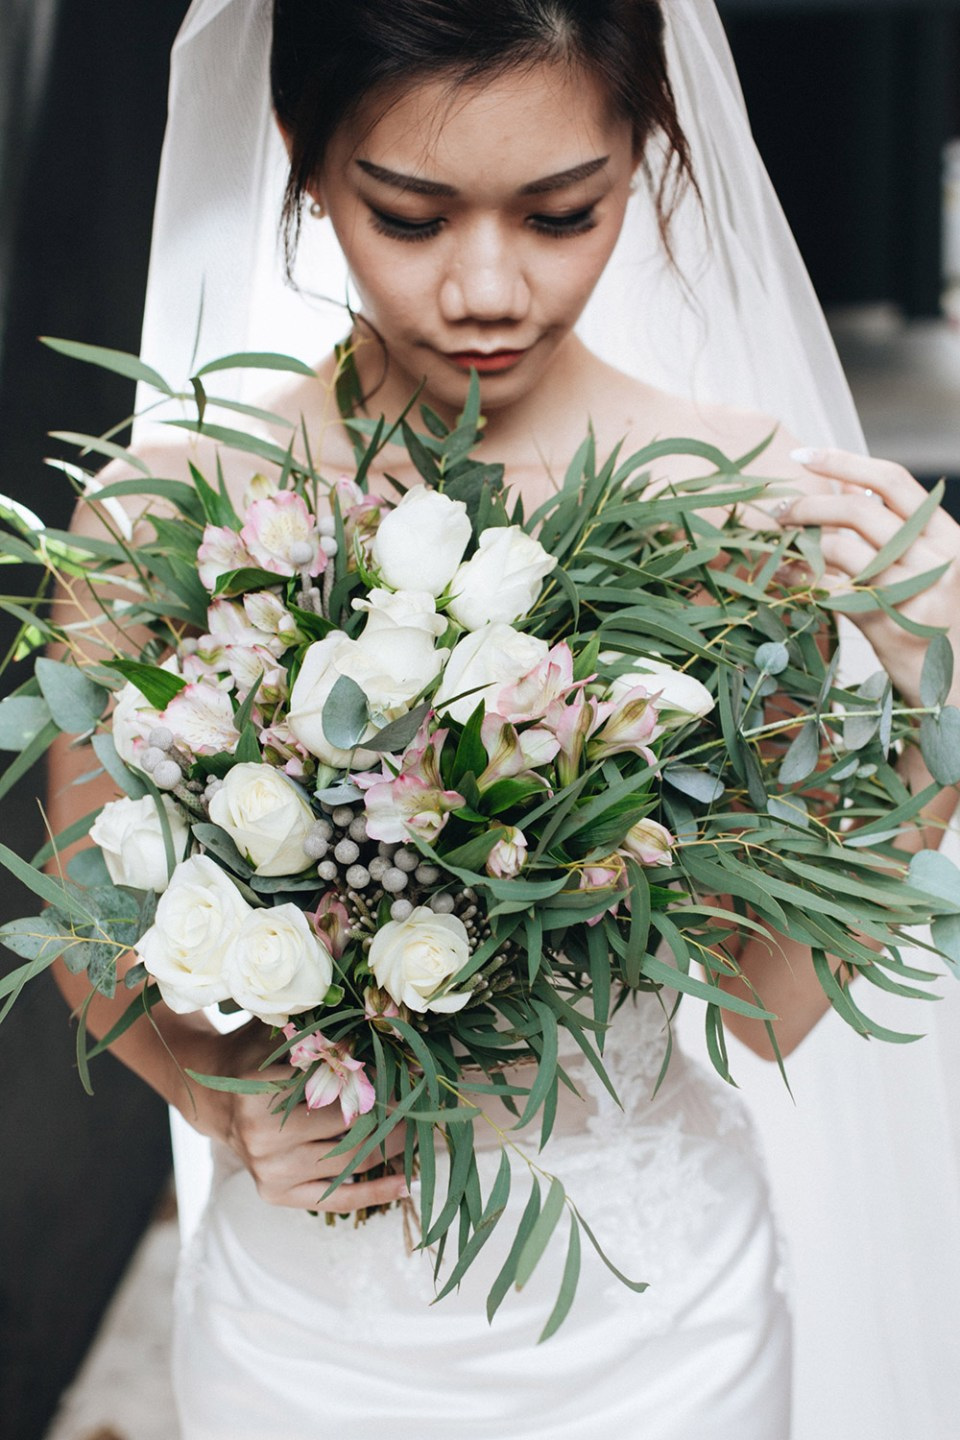 Bridal bouquet. Photo by Arch and Vow. www.theweddingnotebook.com